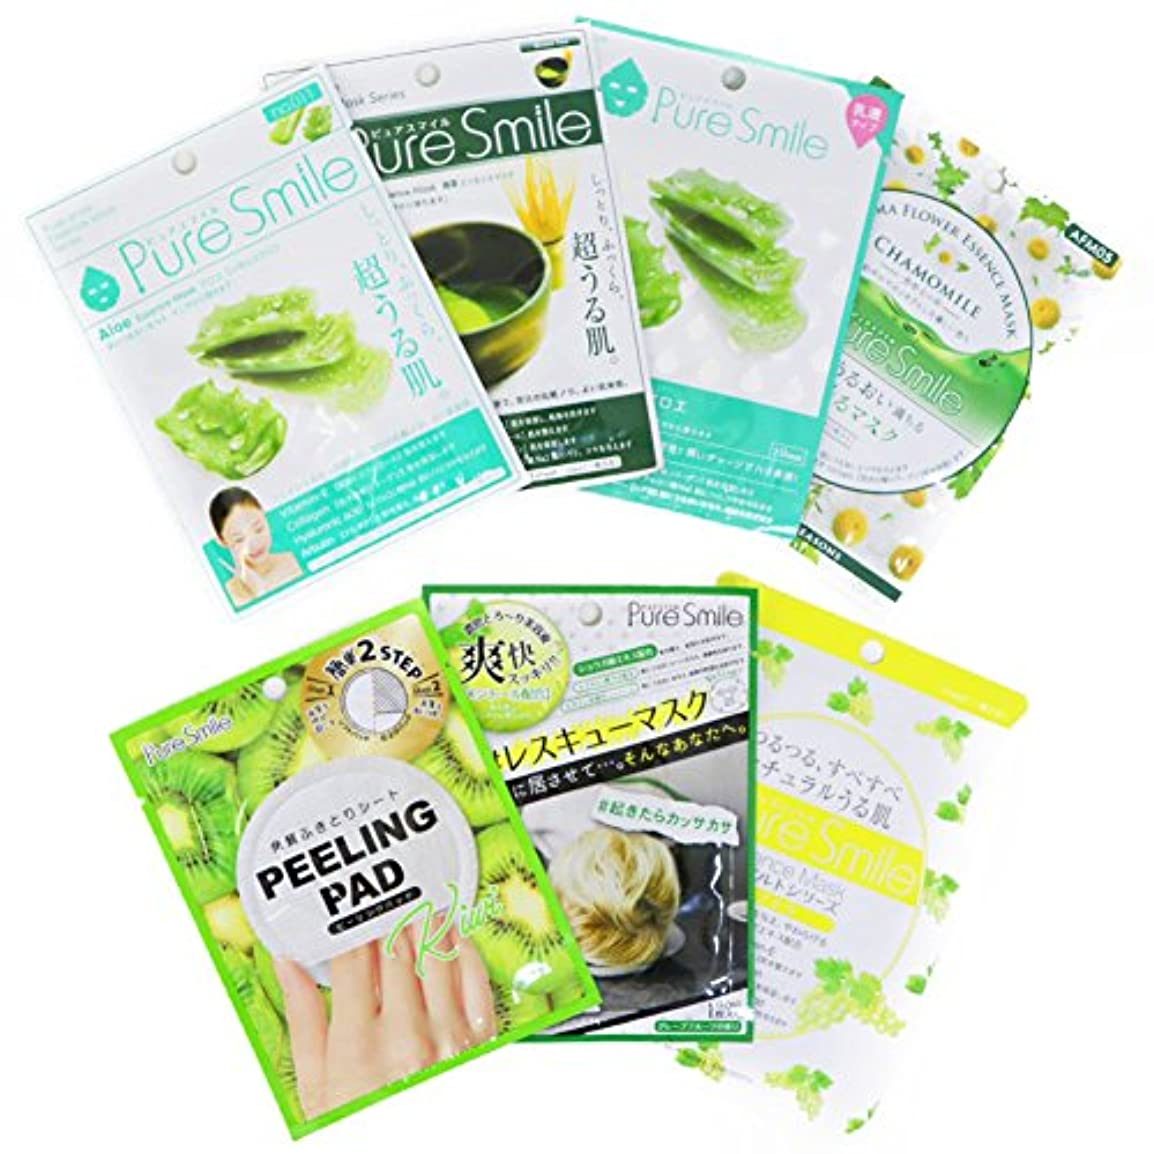 PureSmile ピュアスマイル お肌ケアセット GREEN